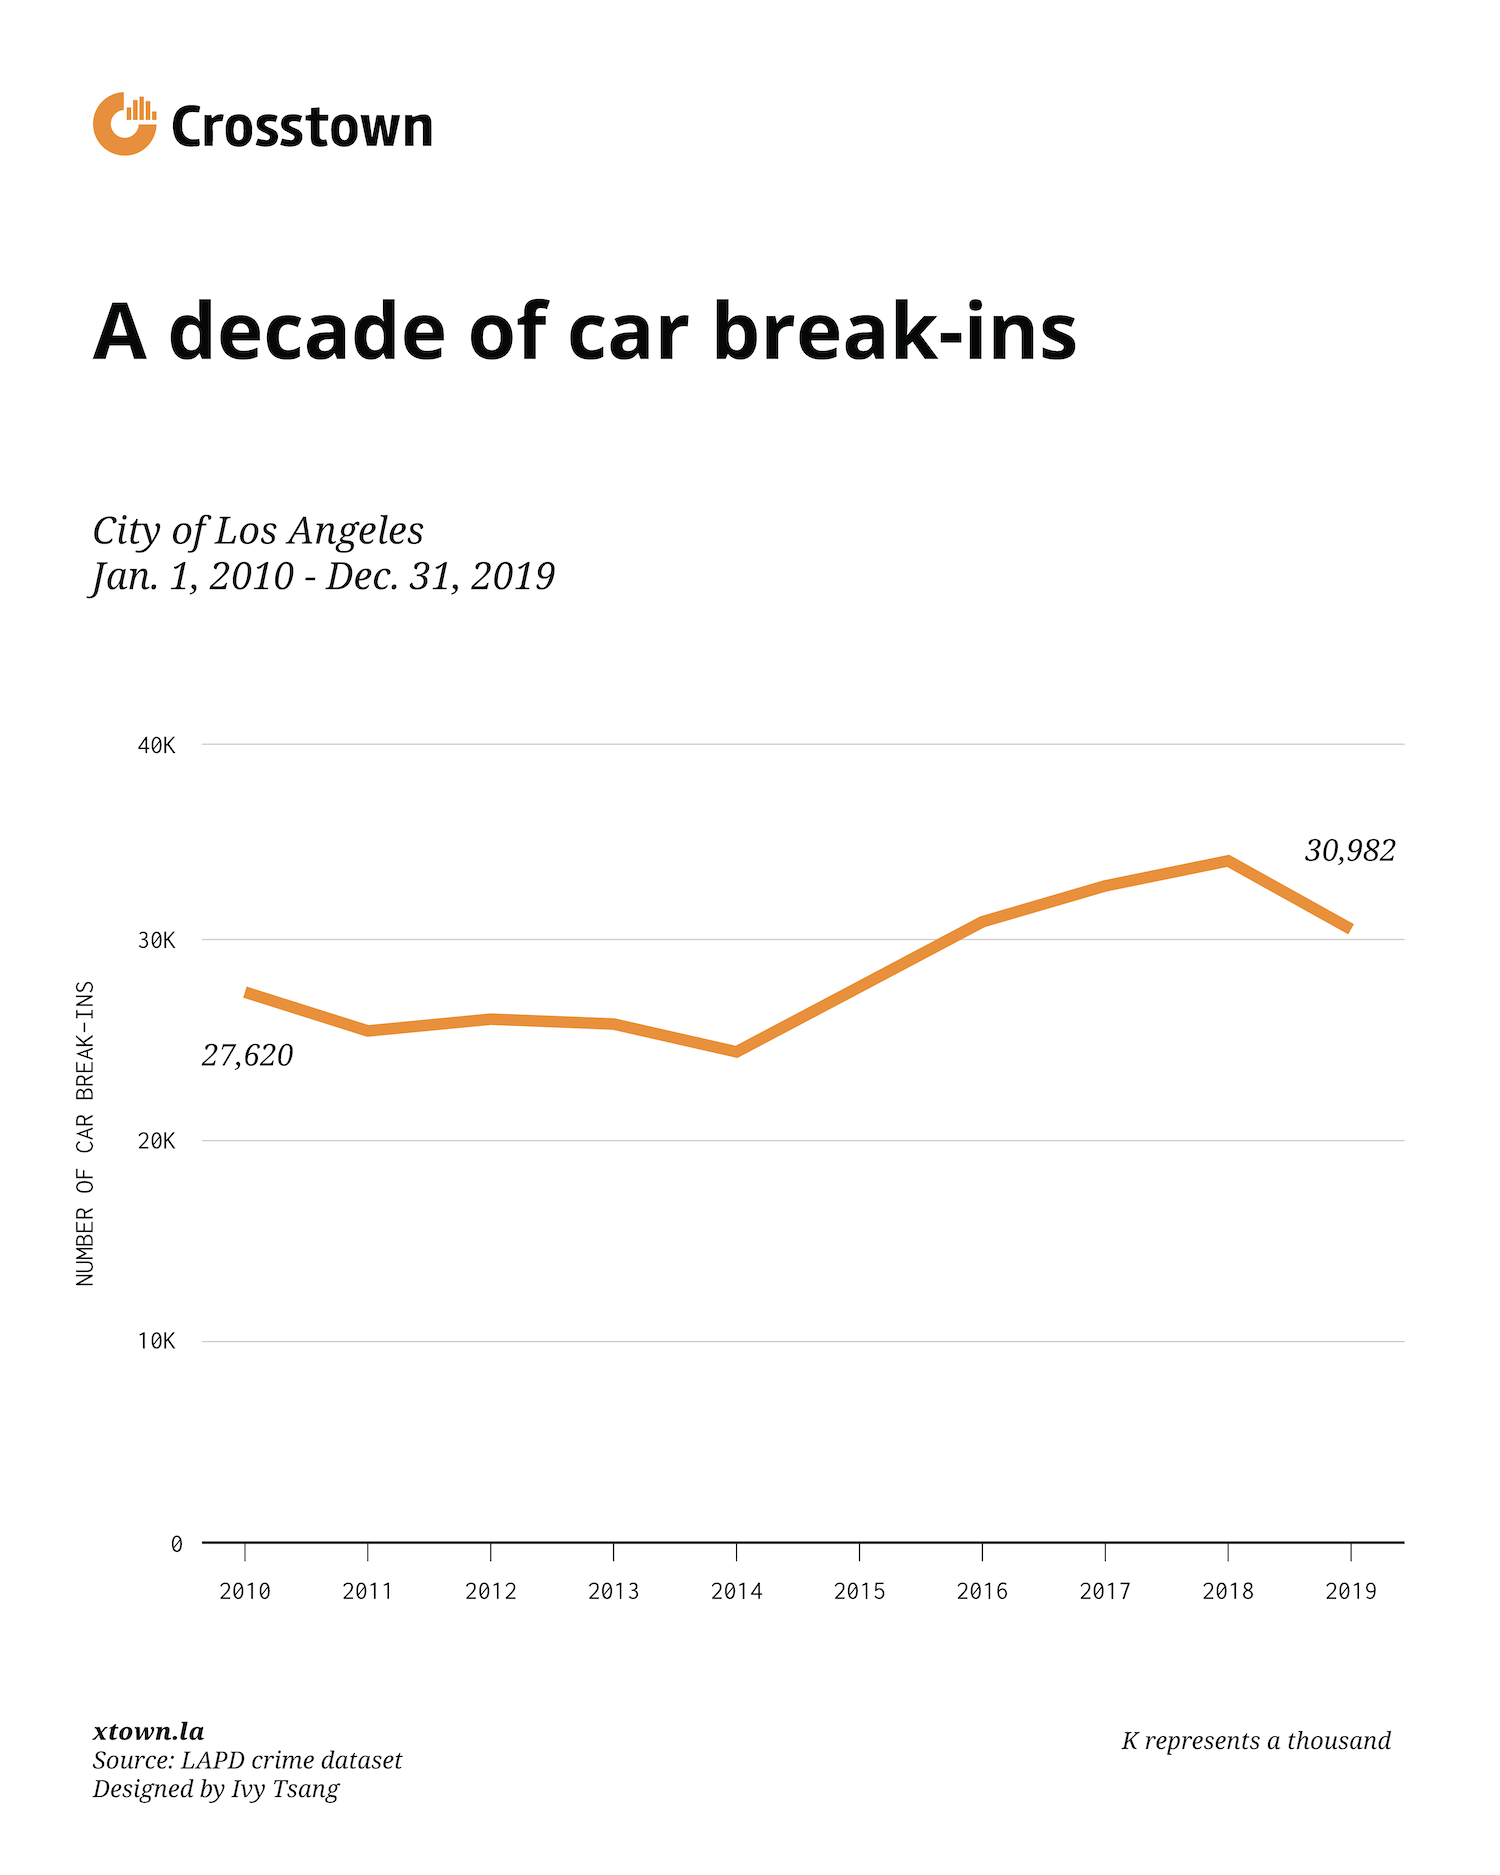 a decade of car break-ins chart